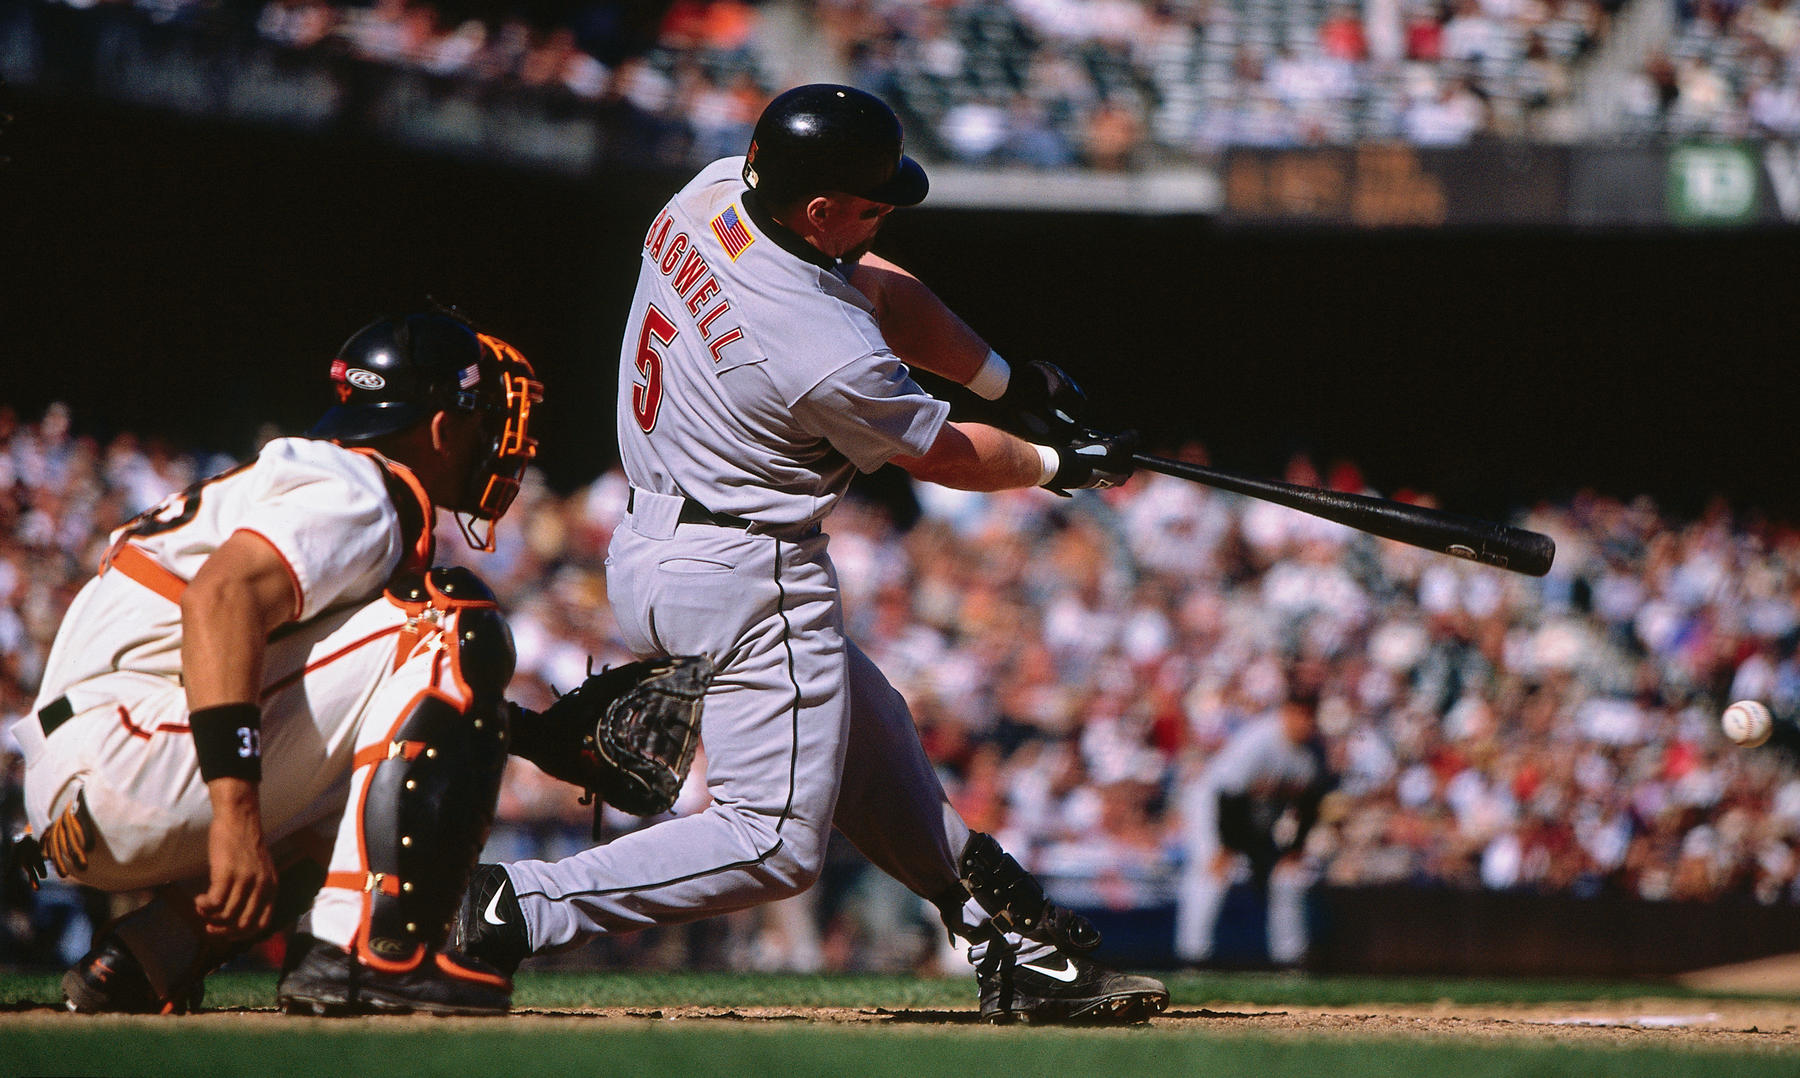 Jeff Bagwell of the Houston Astros bats against the San Francisco Giants during a game against the San Francisco Giants in 2001. 09BMangin011 (Brad Mangin / National Baseball Hall of Fame Library)